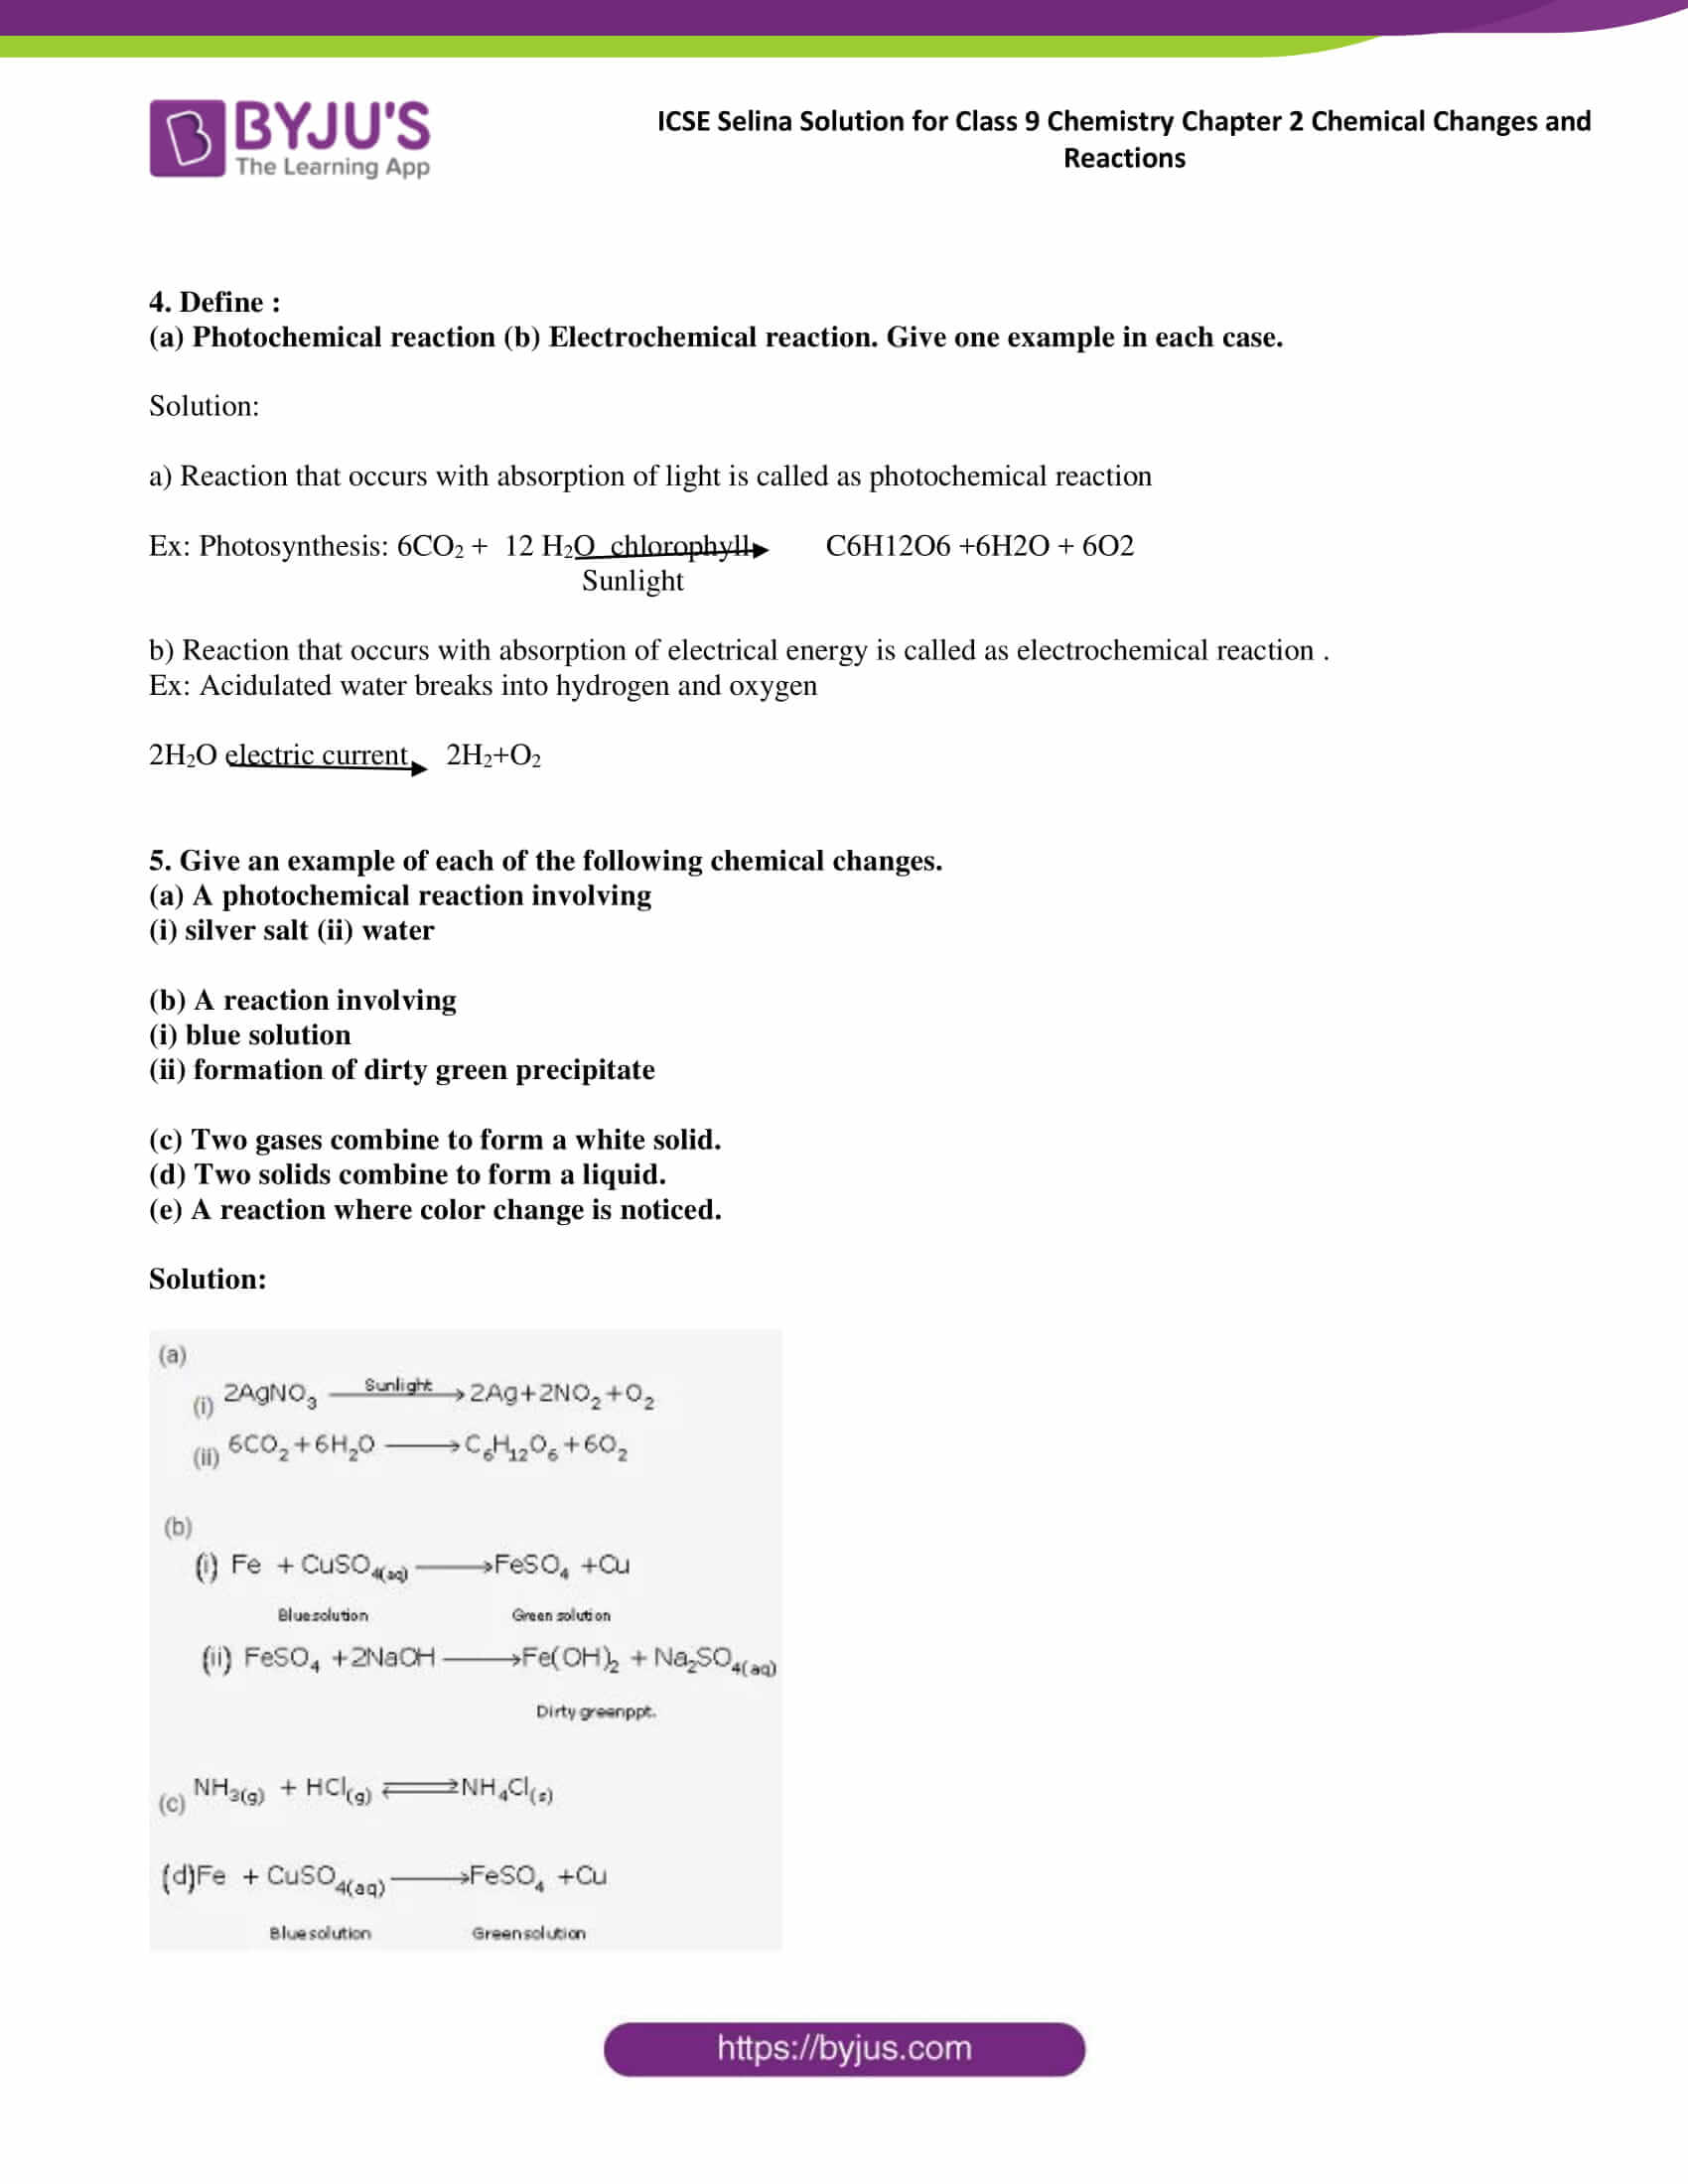 ICSE Selina Solution for class 9 Chemistry Chapter 2 Ex part 02